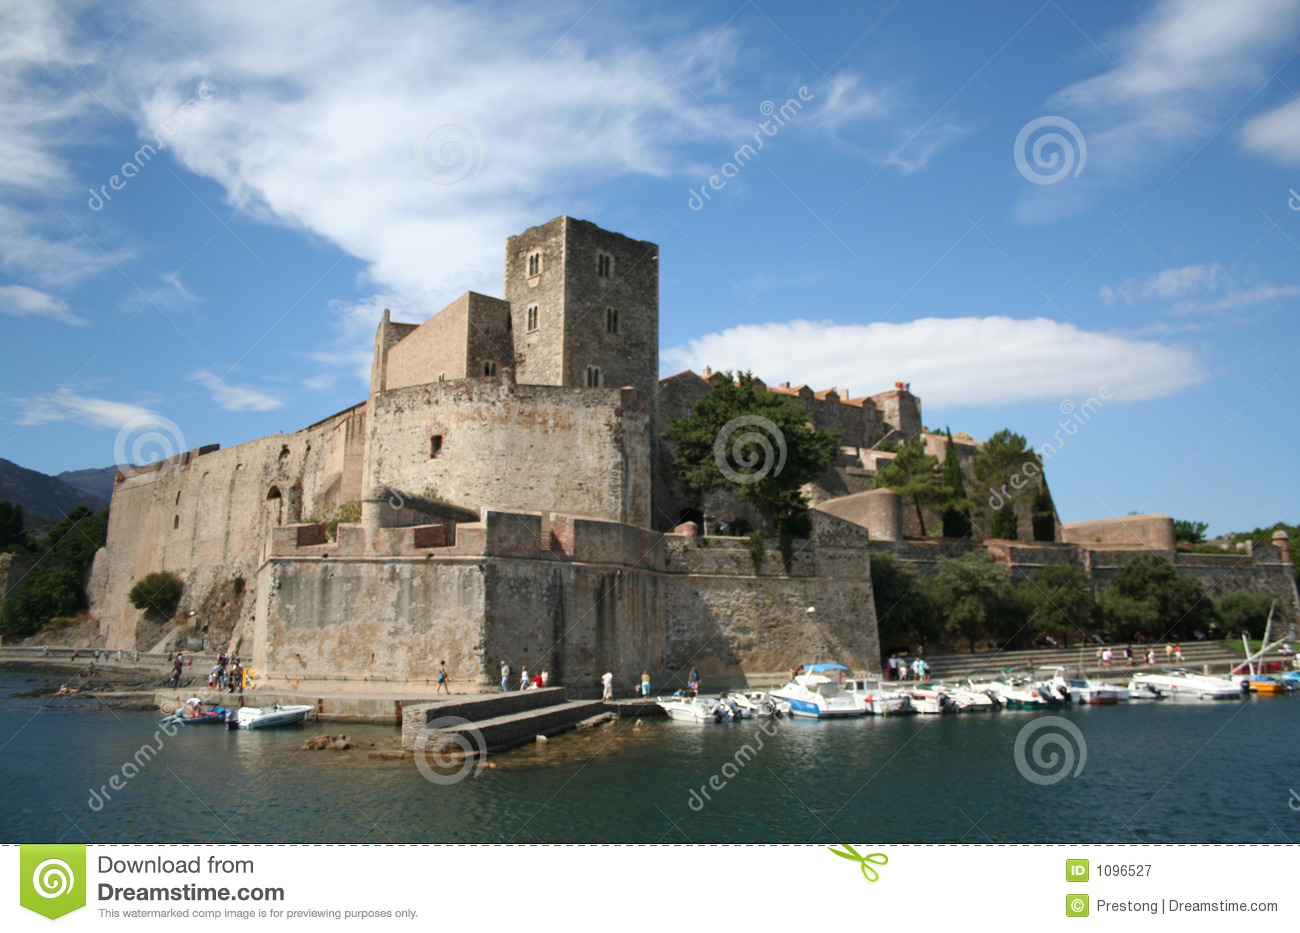 Chateau royal collioure france royalty free stock - Chateau royal collioure ...